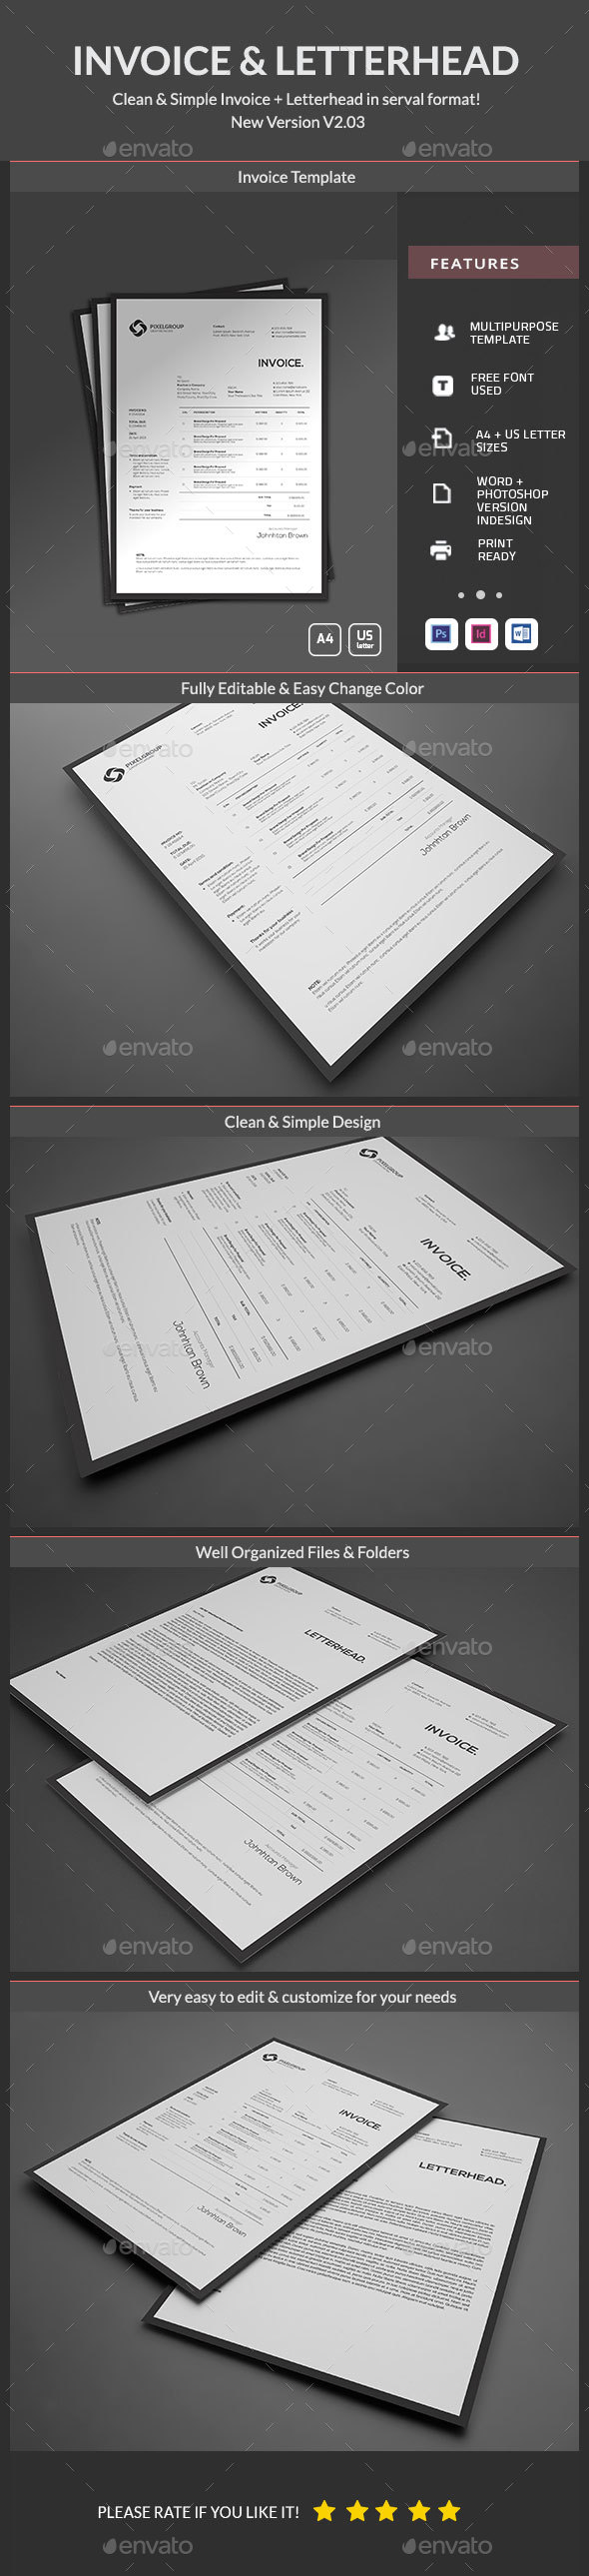 Invoice Template PSD, InDesign INDD, MS Word - A4 and US Letter ...